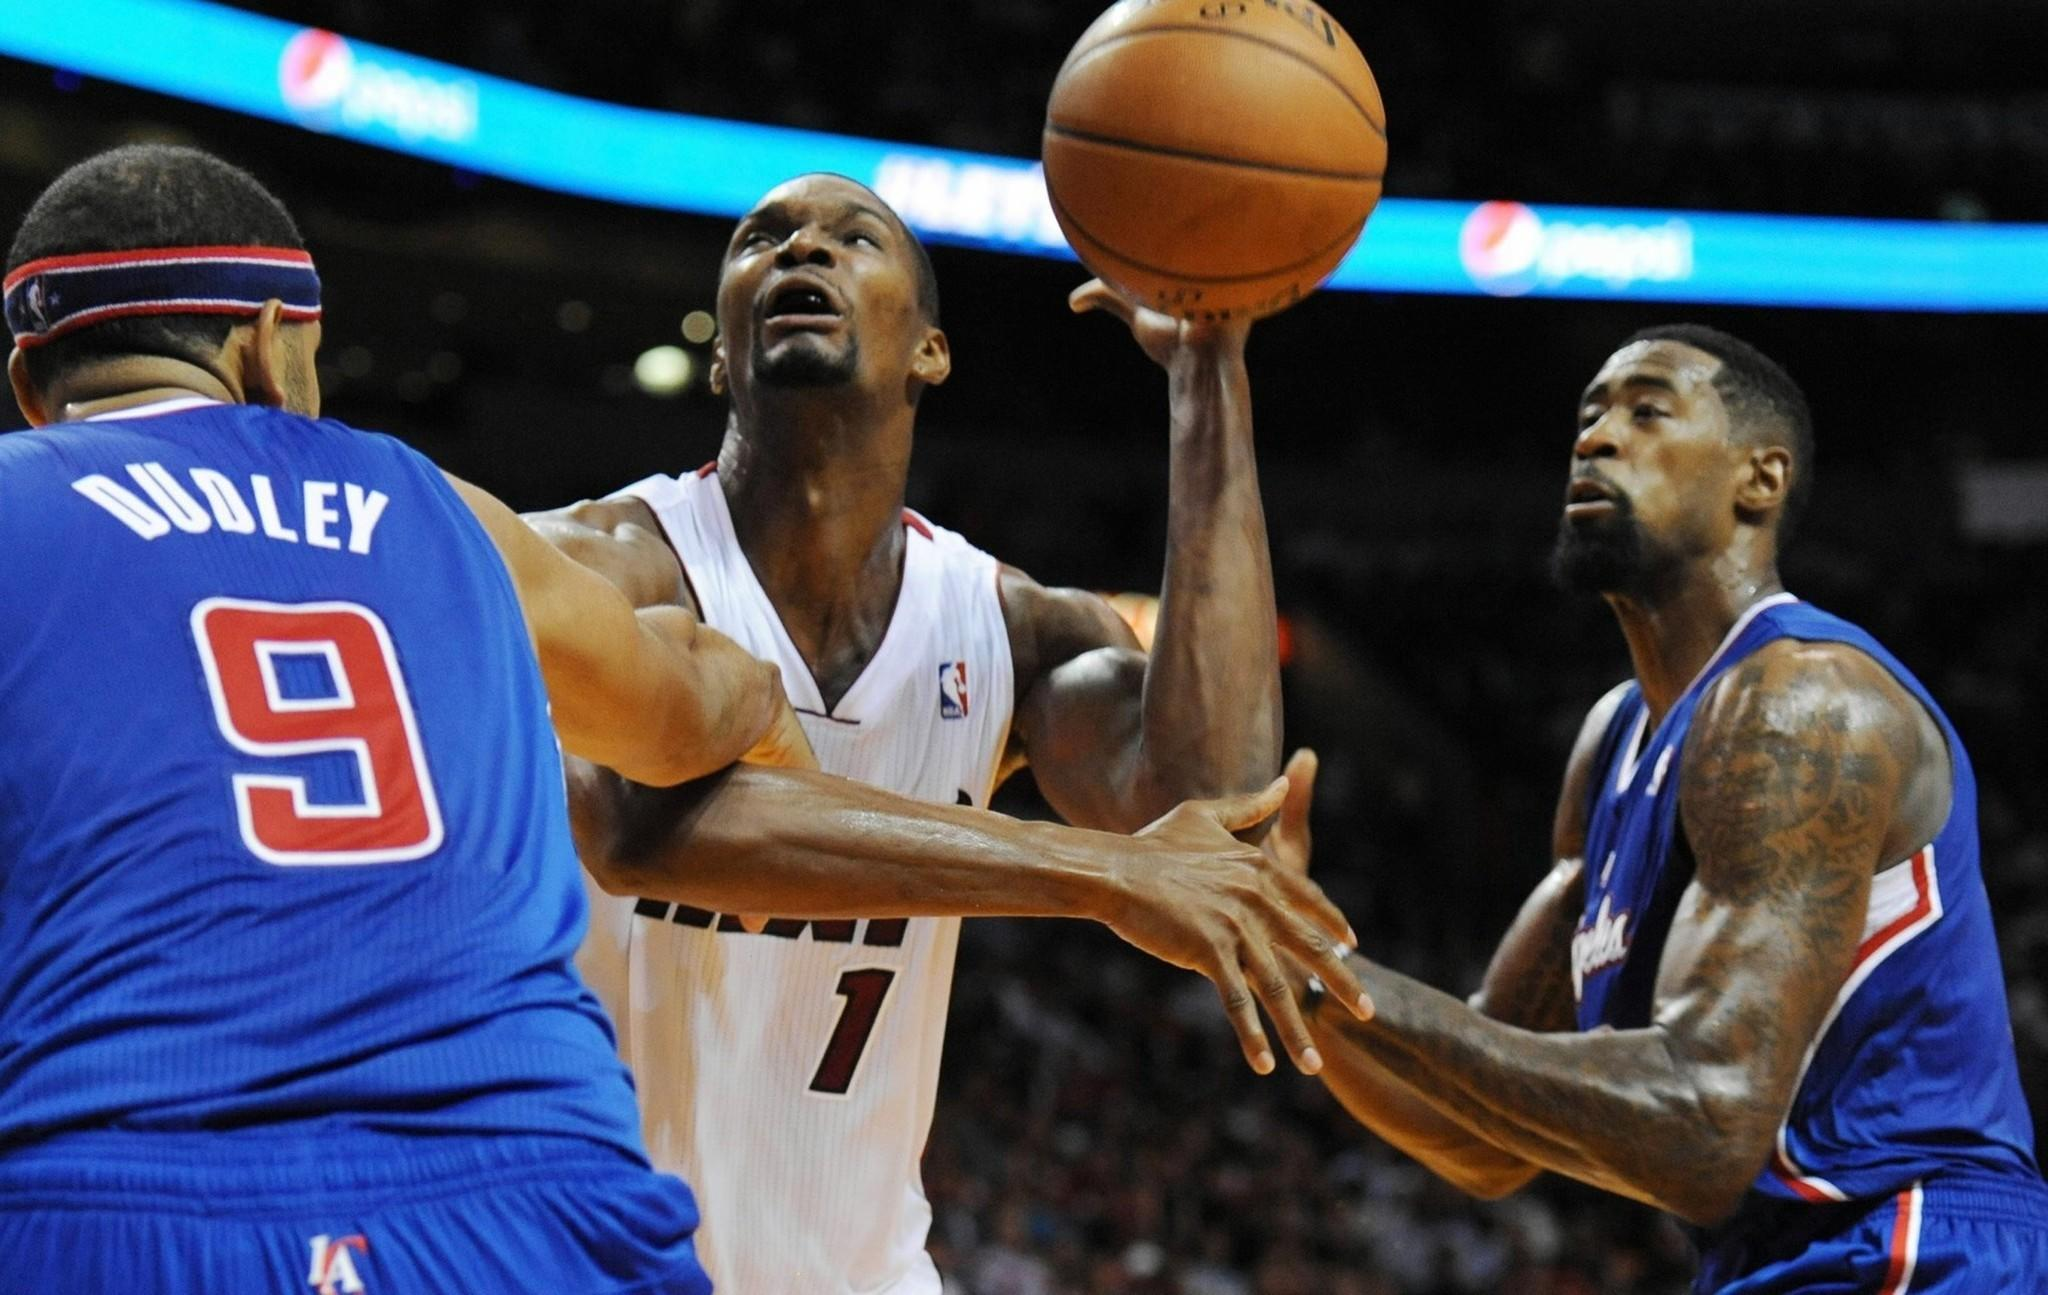 Heat power forward Chris Bosh looks to score inside against Clippers forward Jared Dudley and center DeAndre Jordan during a game earlier this season at Staples Center.